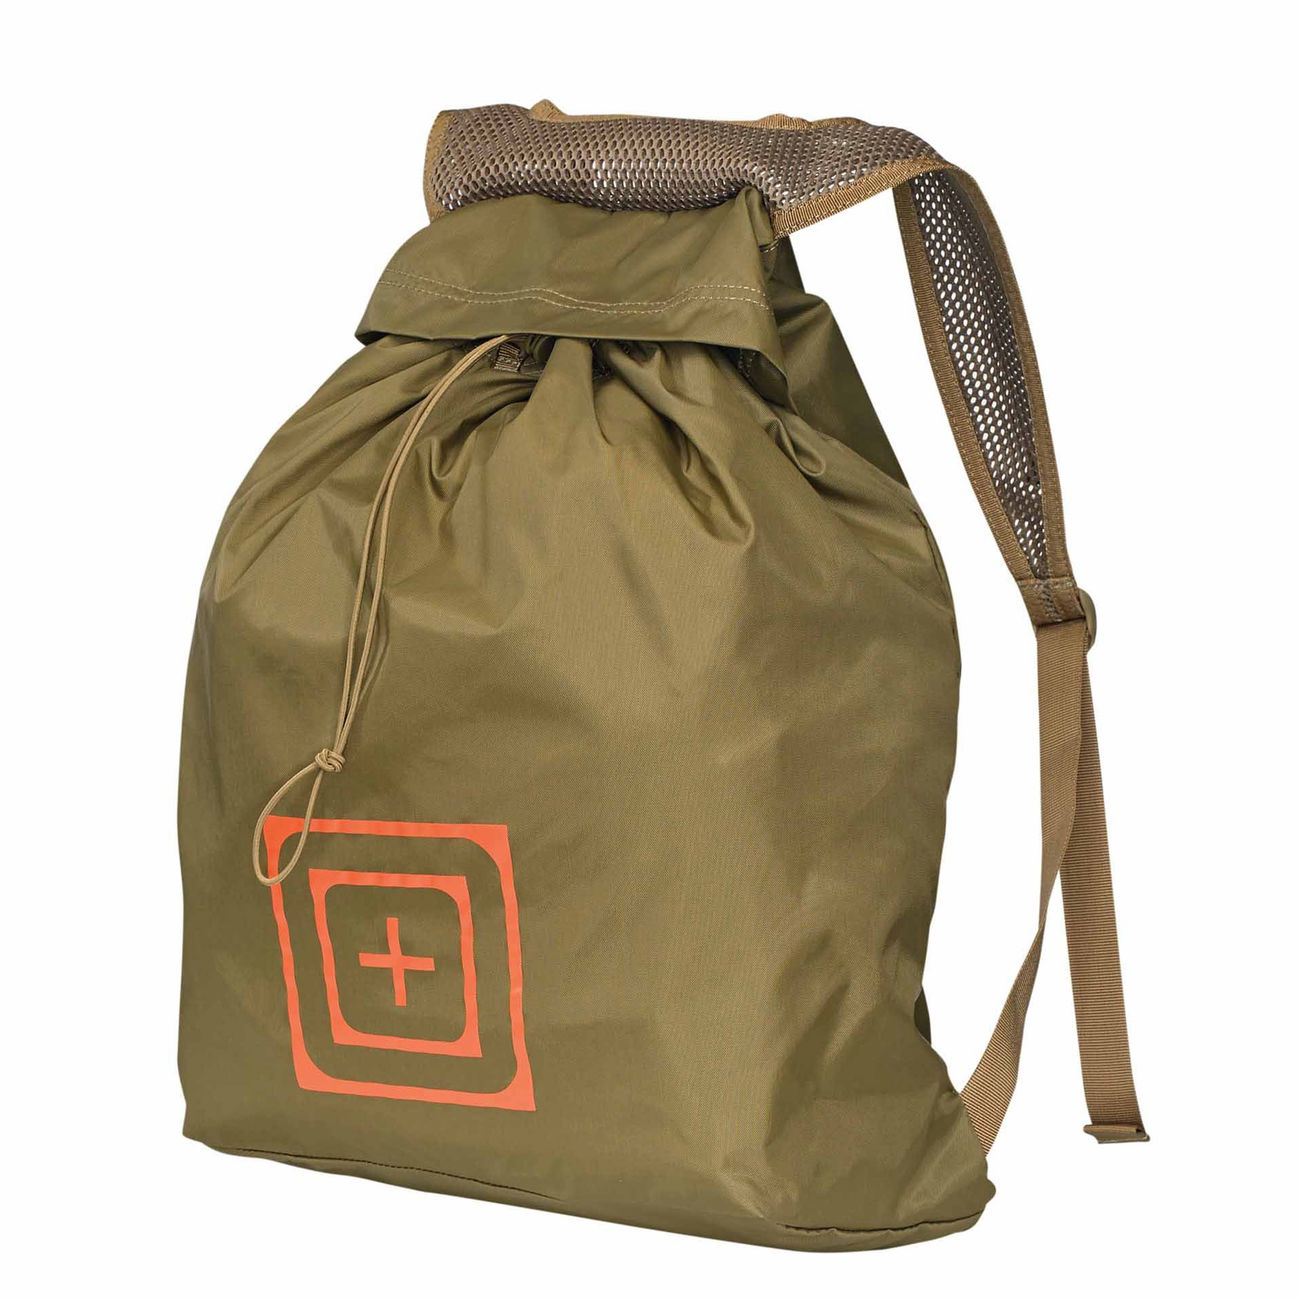 5.11 Rucksack Rapid Excursion Pack sandstone 0